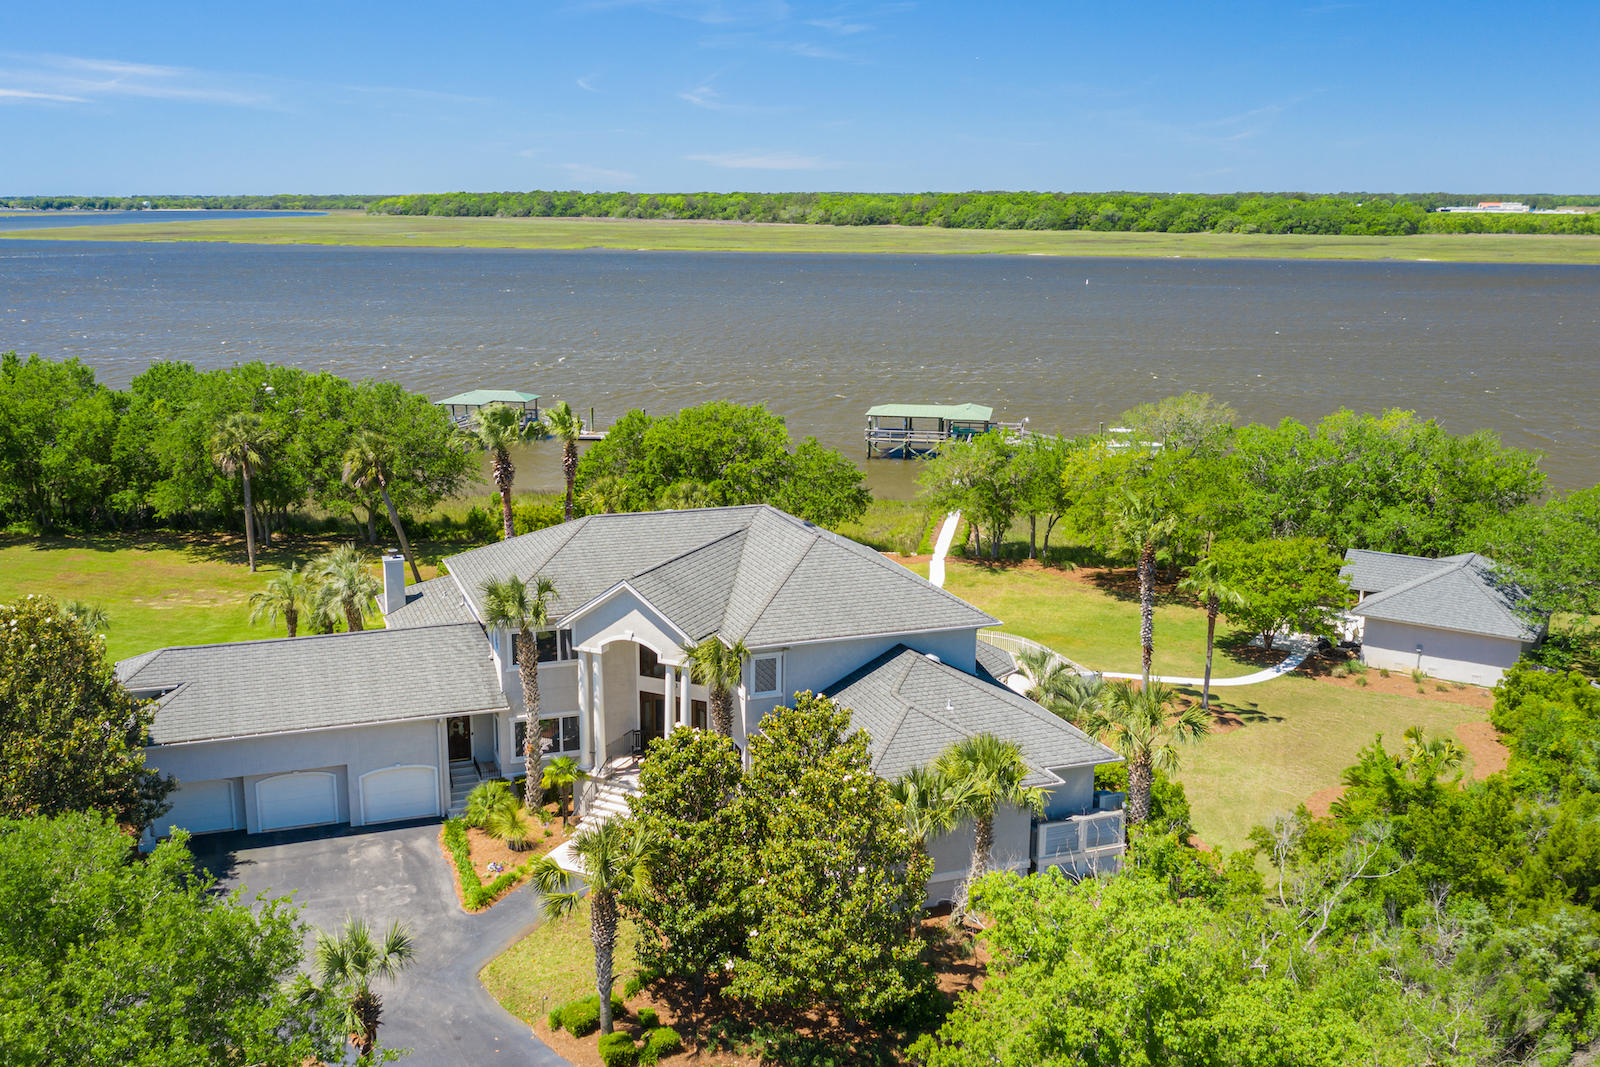 Grimball Farms Homes For Sale - 1521 Robin Rooke, Charleston, SC - 39